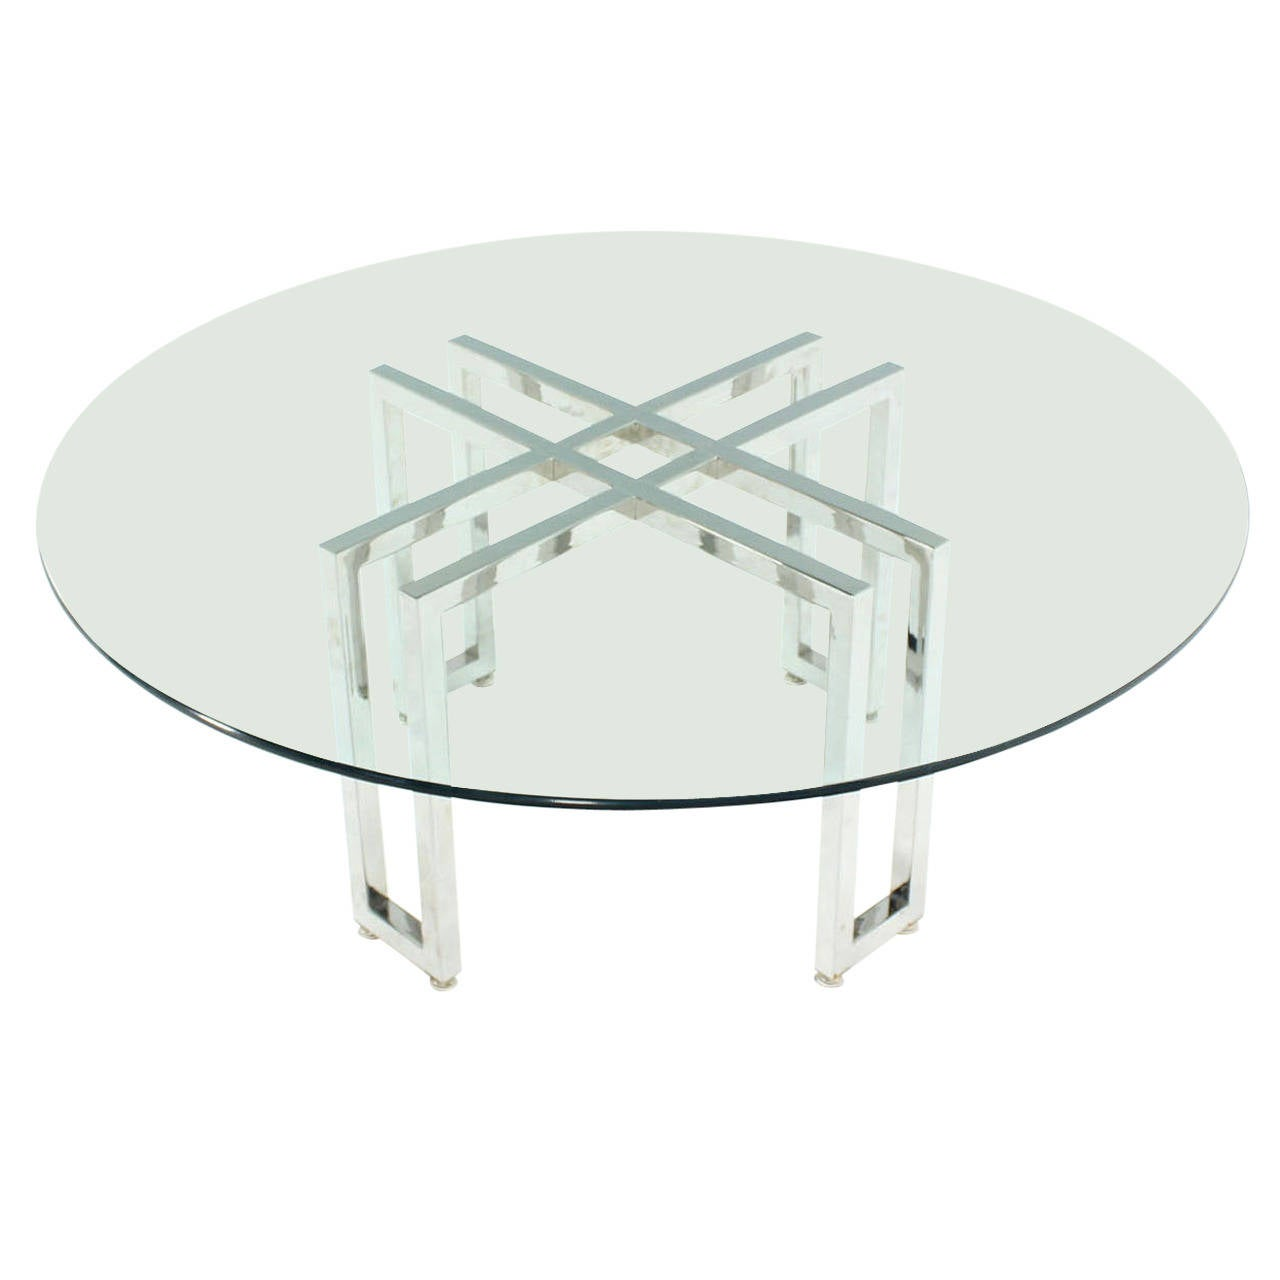 Double parallel xbase round coffee table for sale at 1stdibs for Double round coffee table